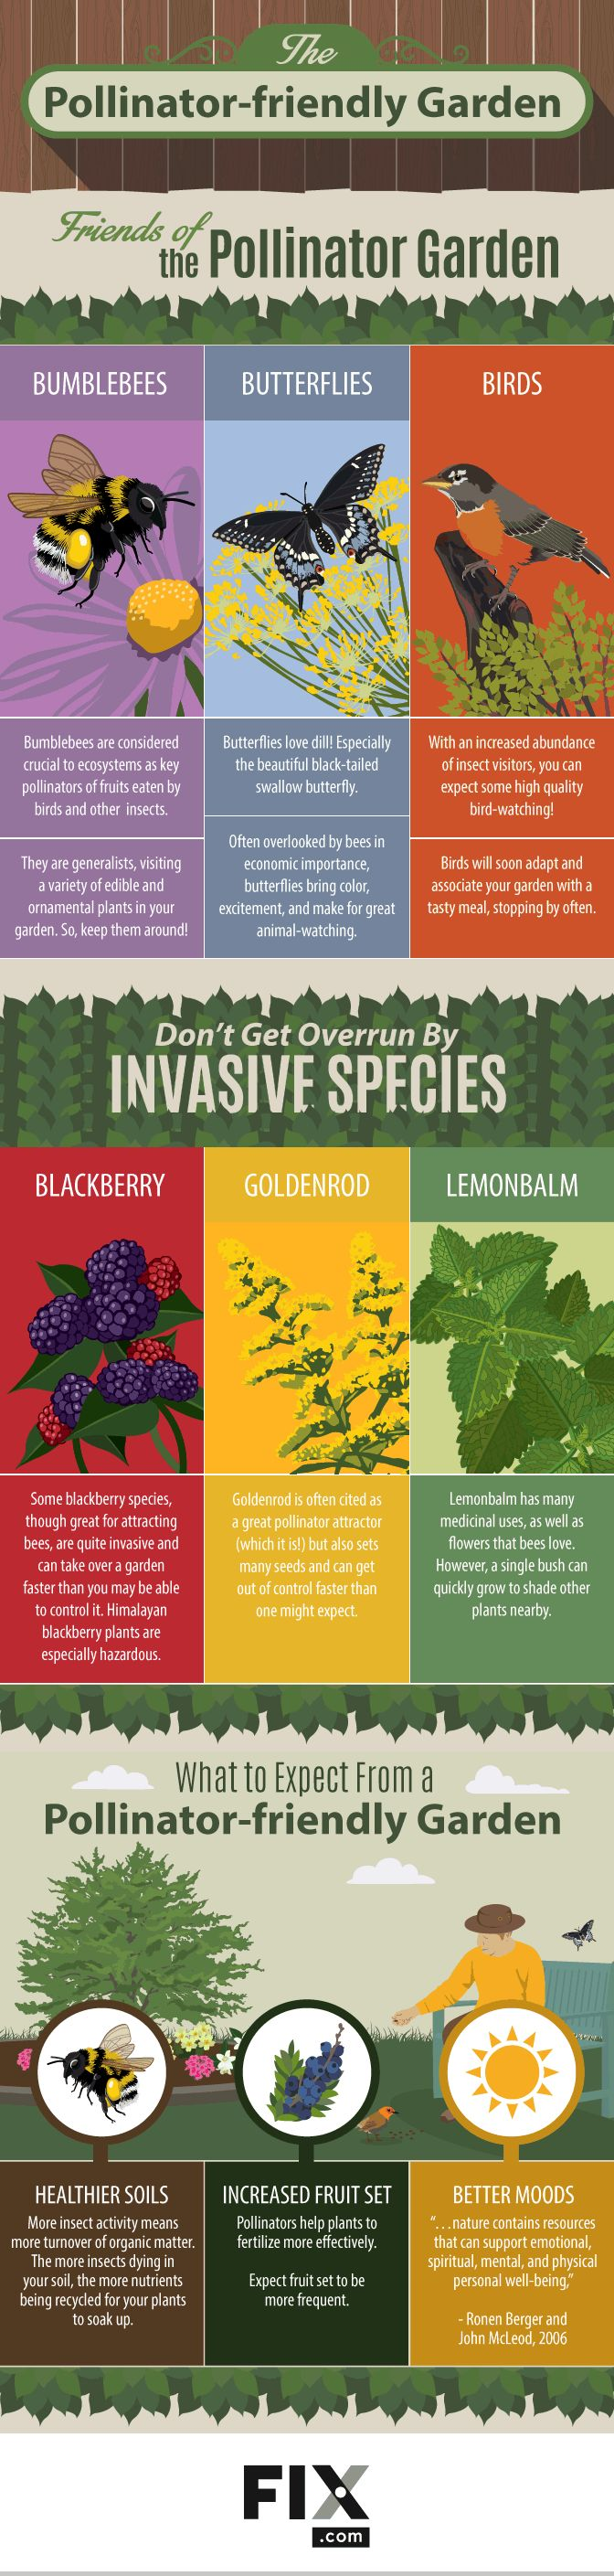 The Pollinator-Friendly Garden #Infographic #Gardening